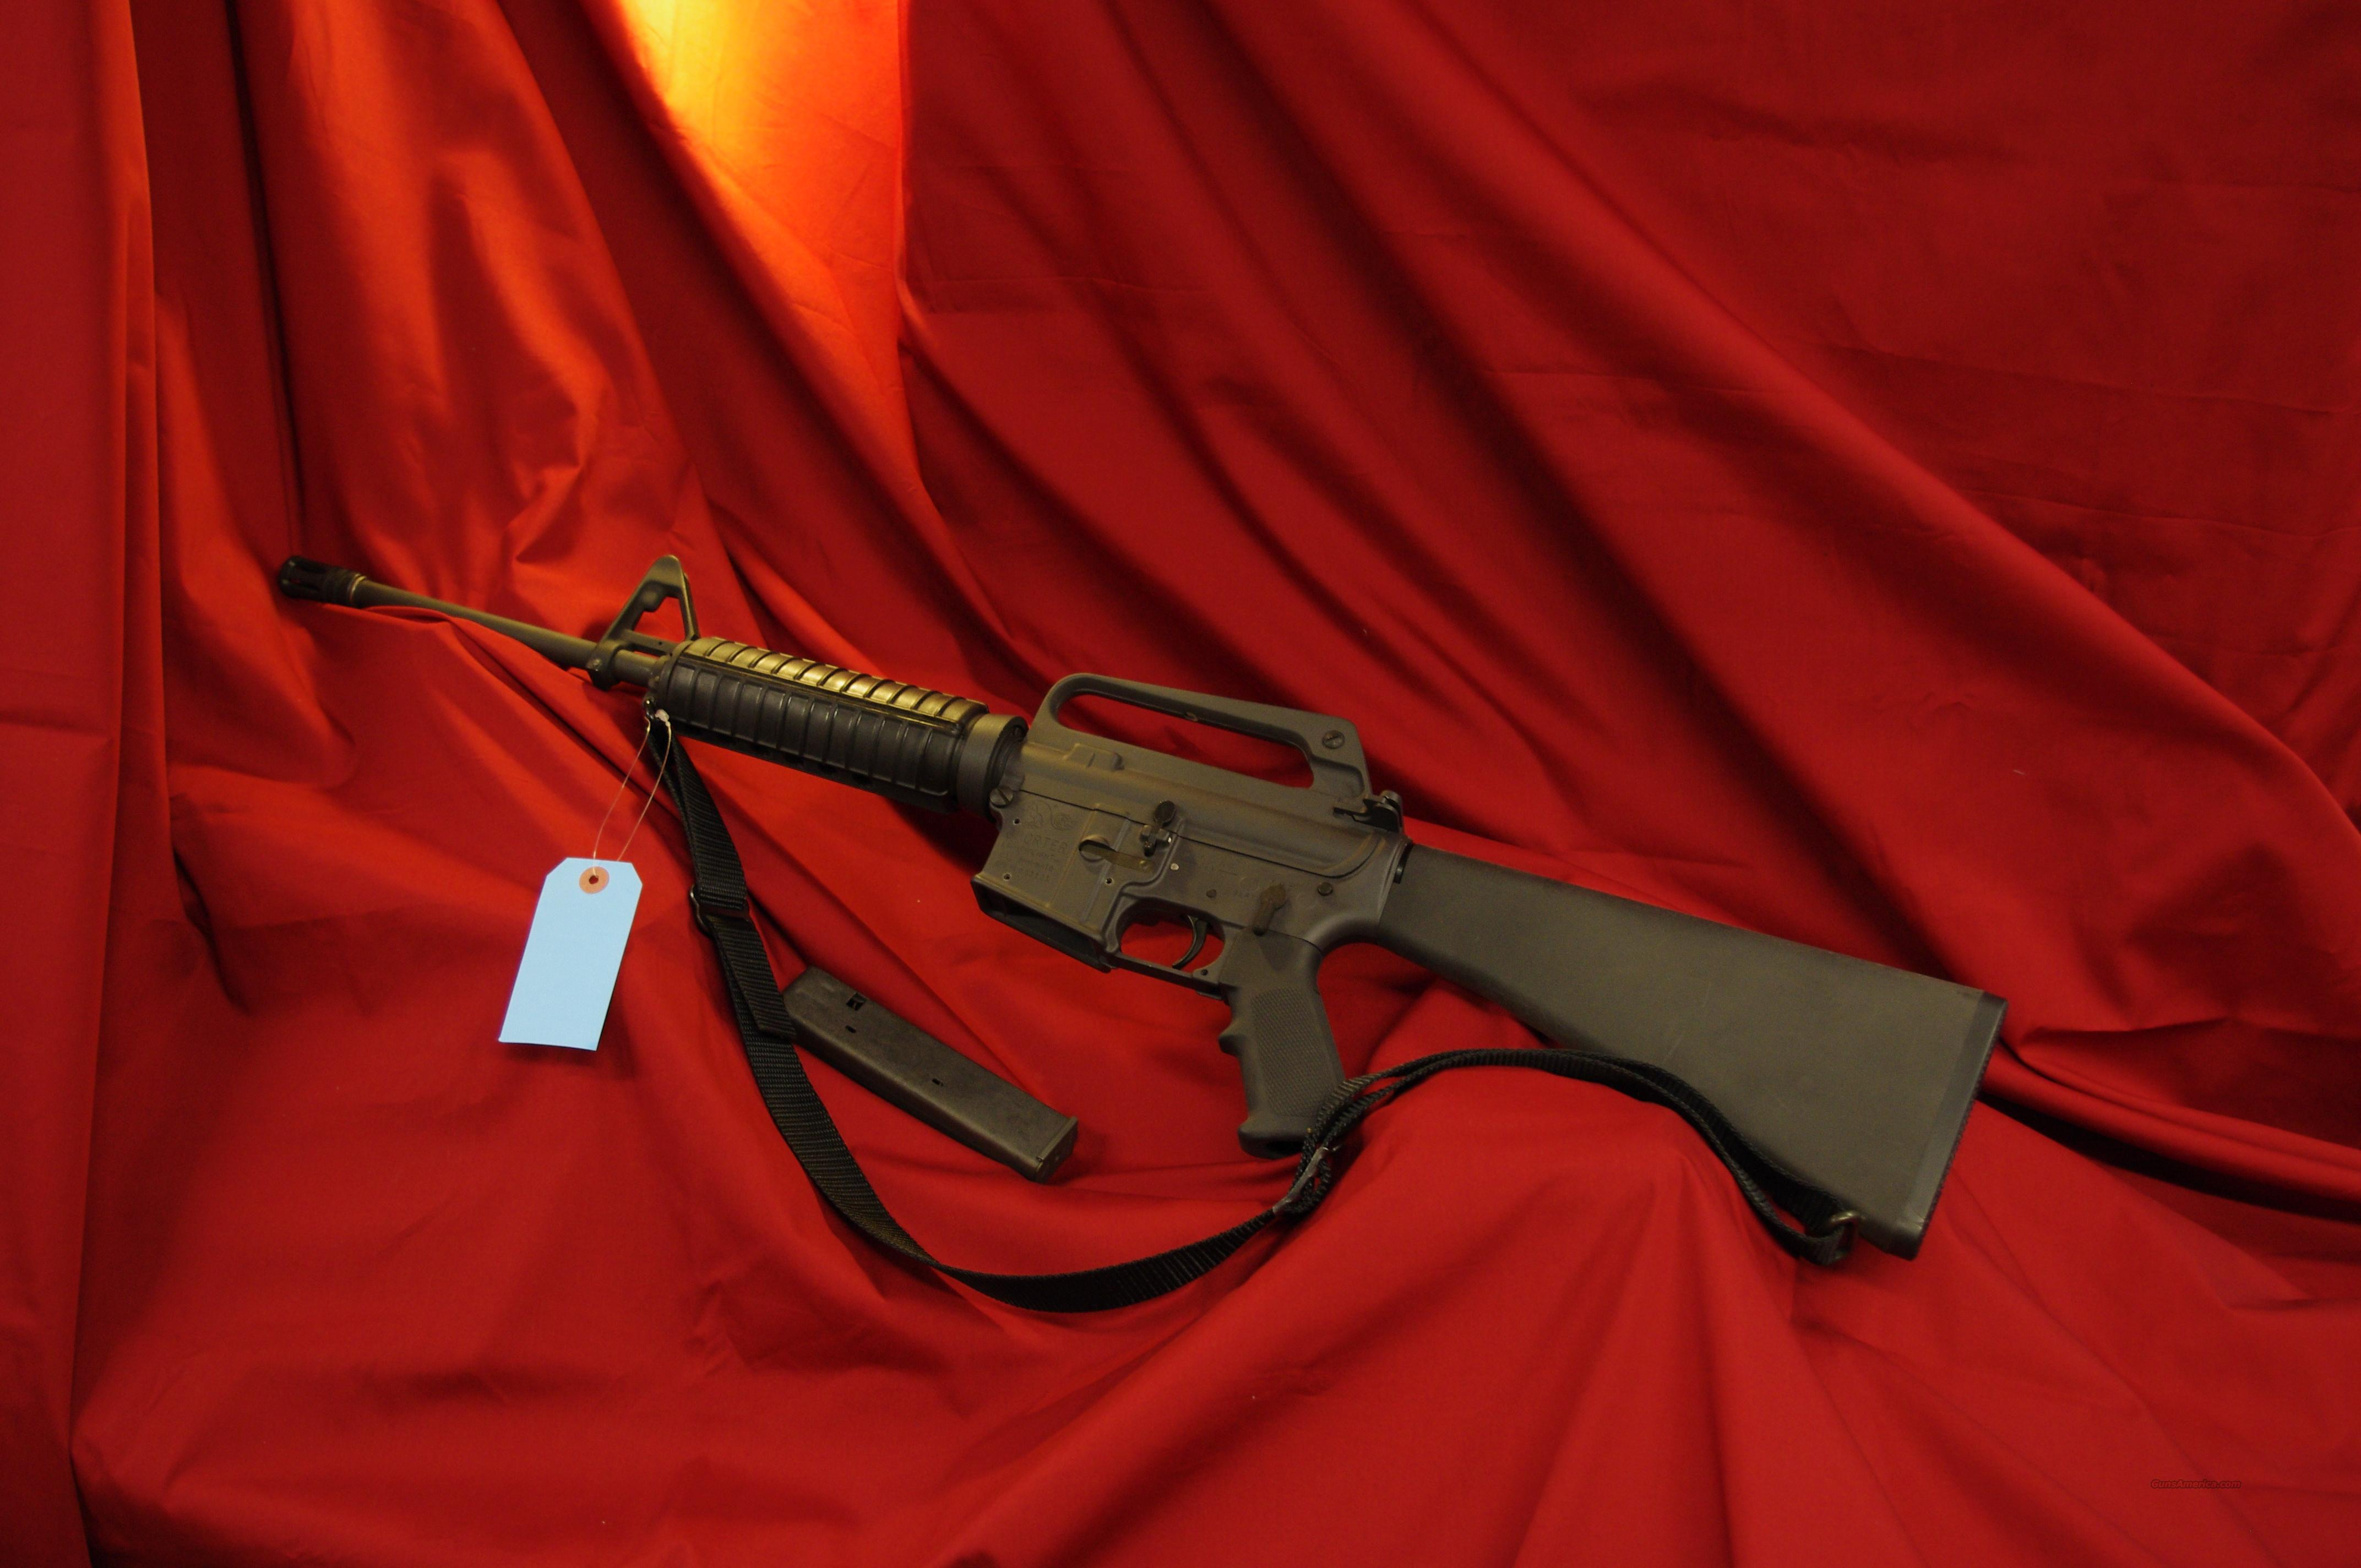 Pre-Ban Colt Sporter AR in 9mm  Guns > Rifles > Colt Military/Tactical Rifles